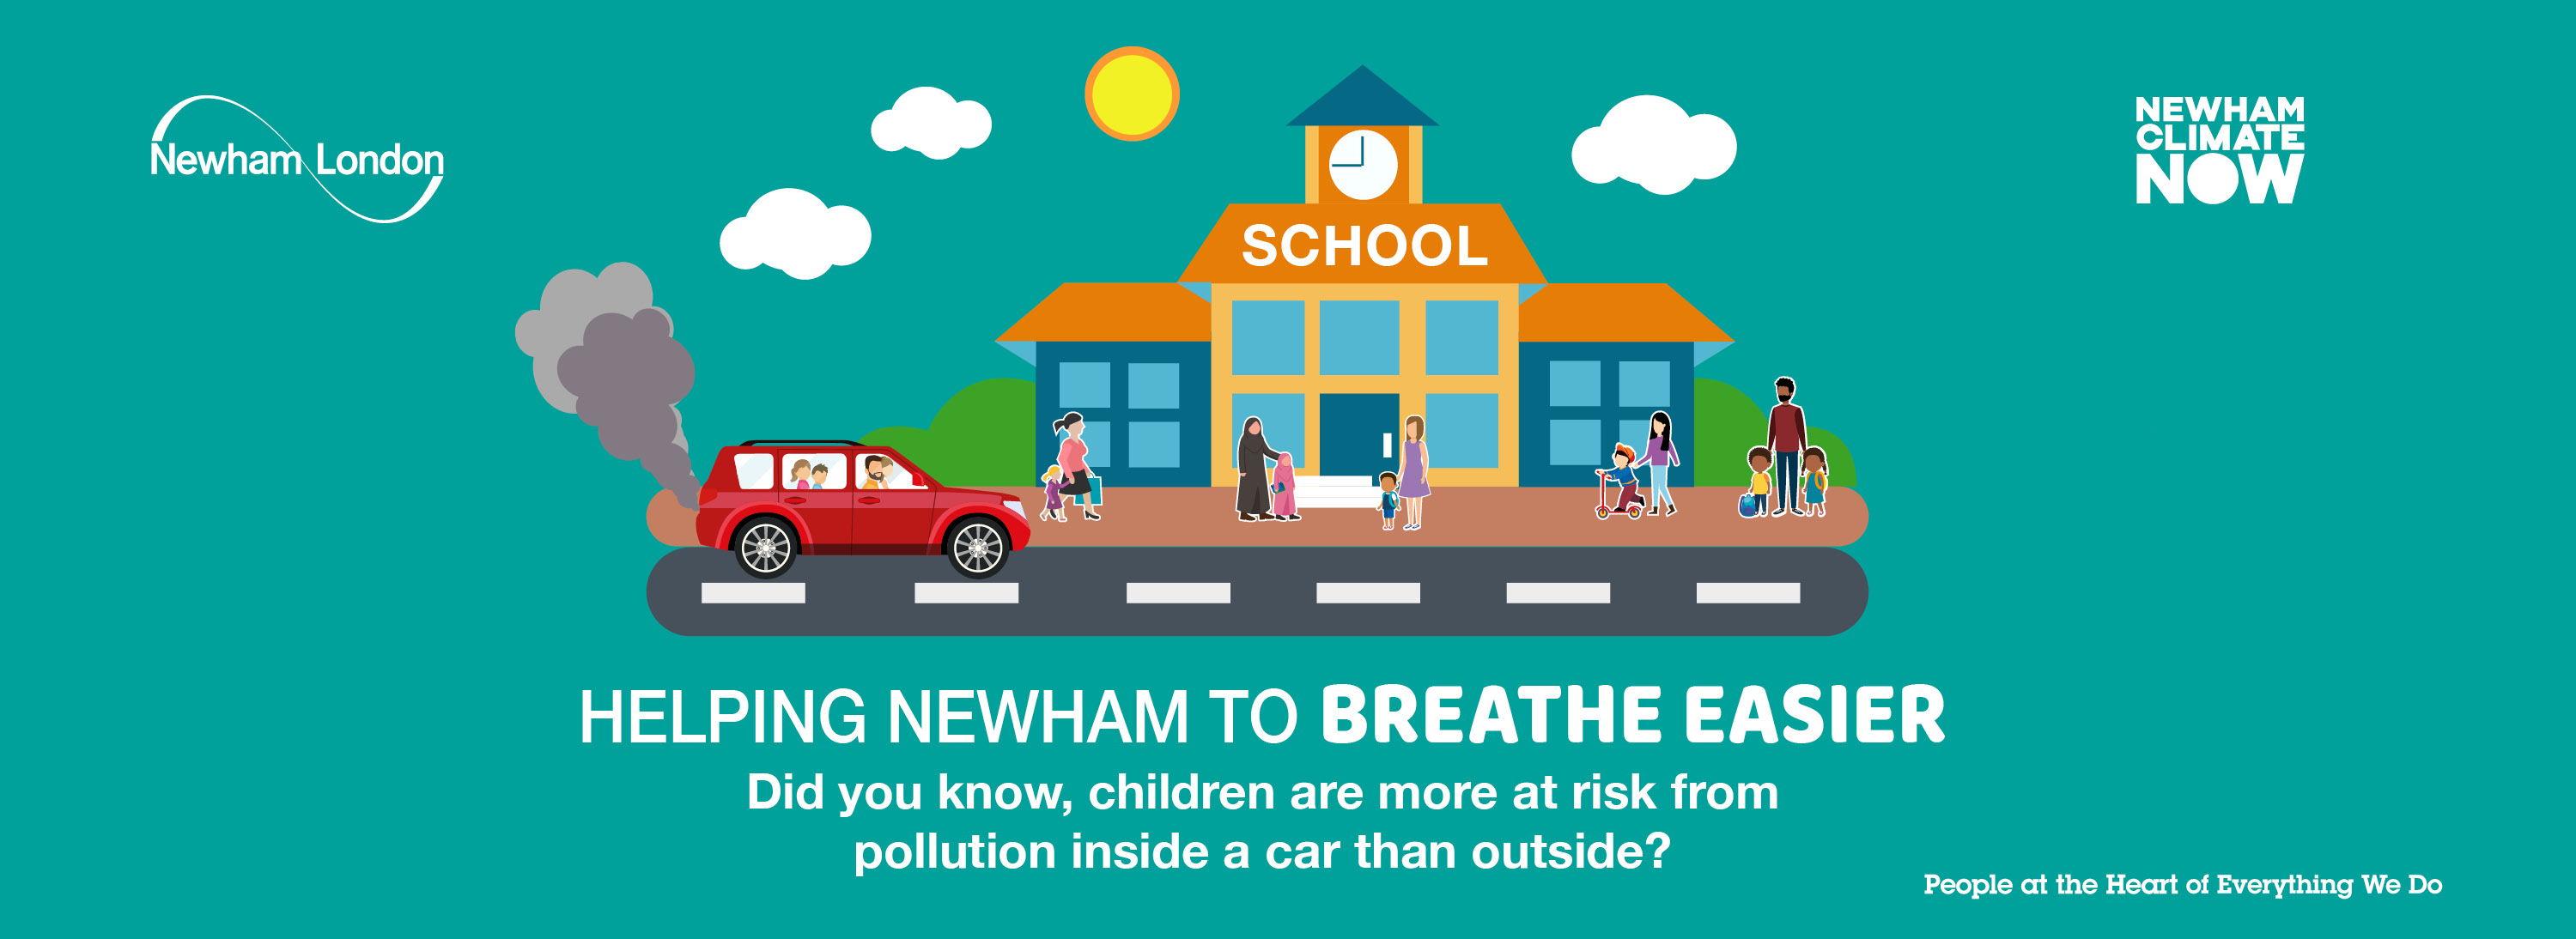 Did you know, children are more at risk from pollution inside a car than outside?